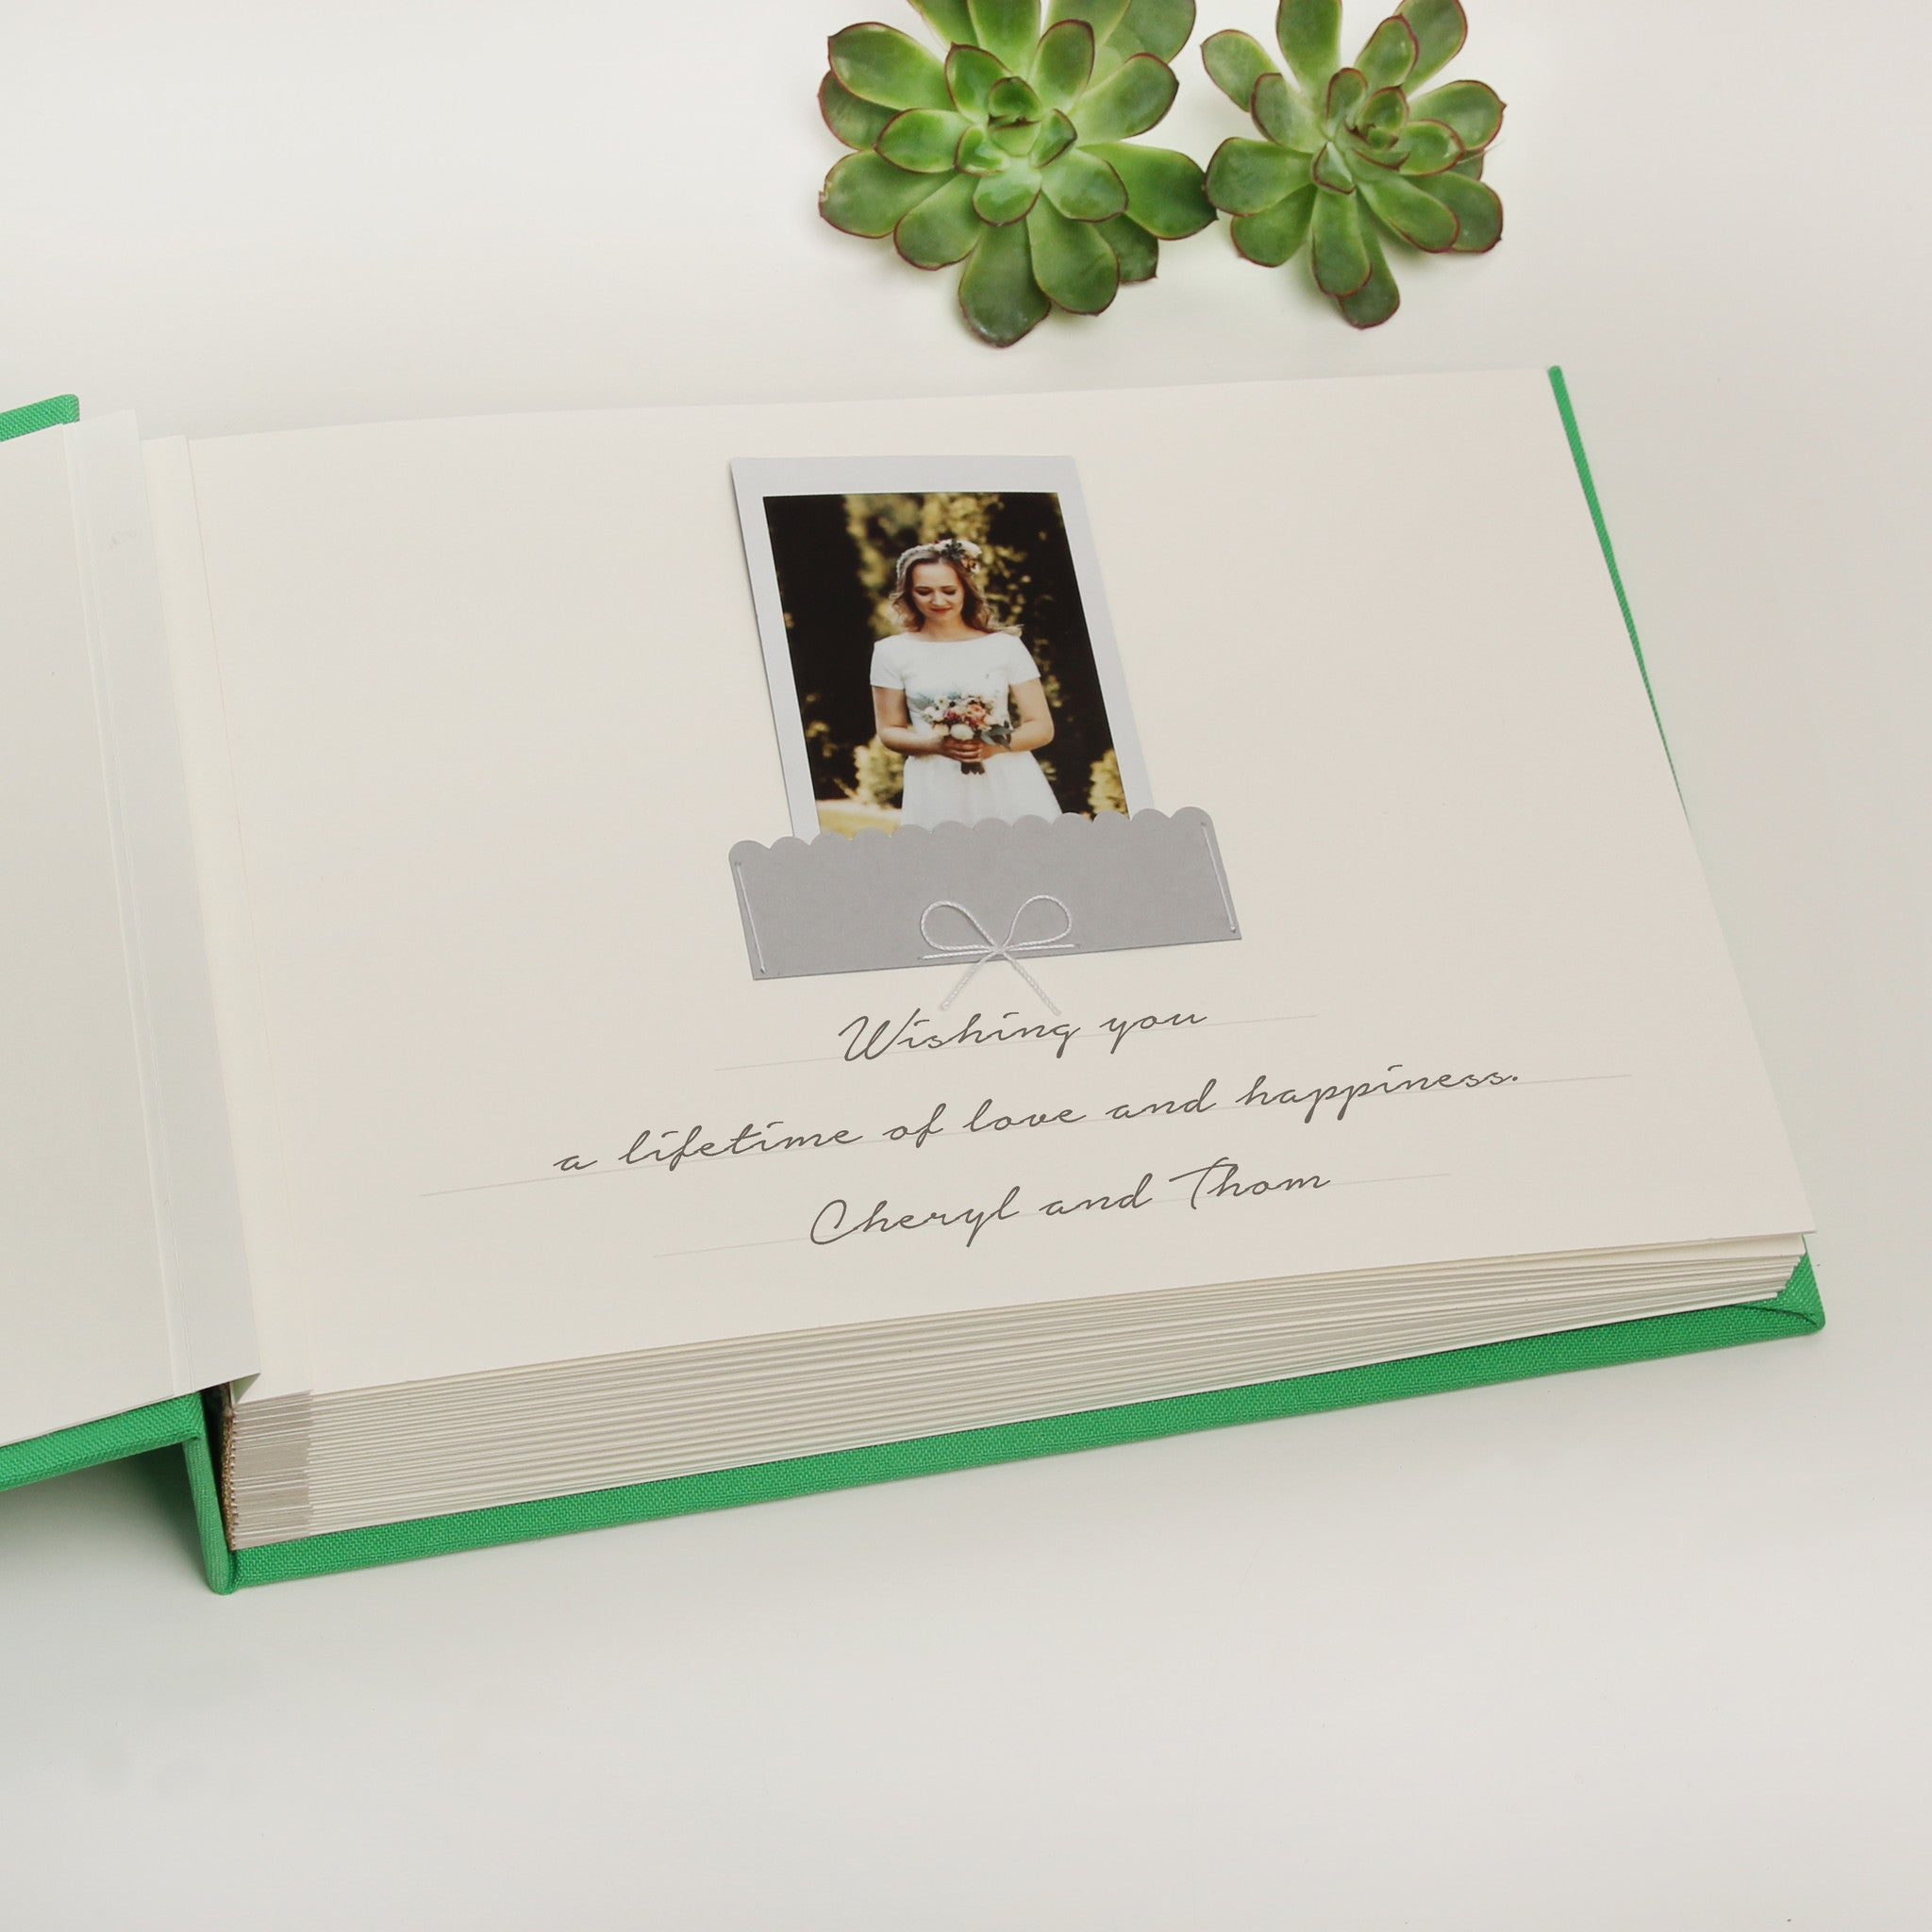 Green Instax guest book Photo Wedding GuestBook Greenery with Gold Foil Lettering Pocket Wedding Album - by Liumy